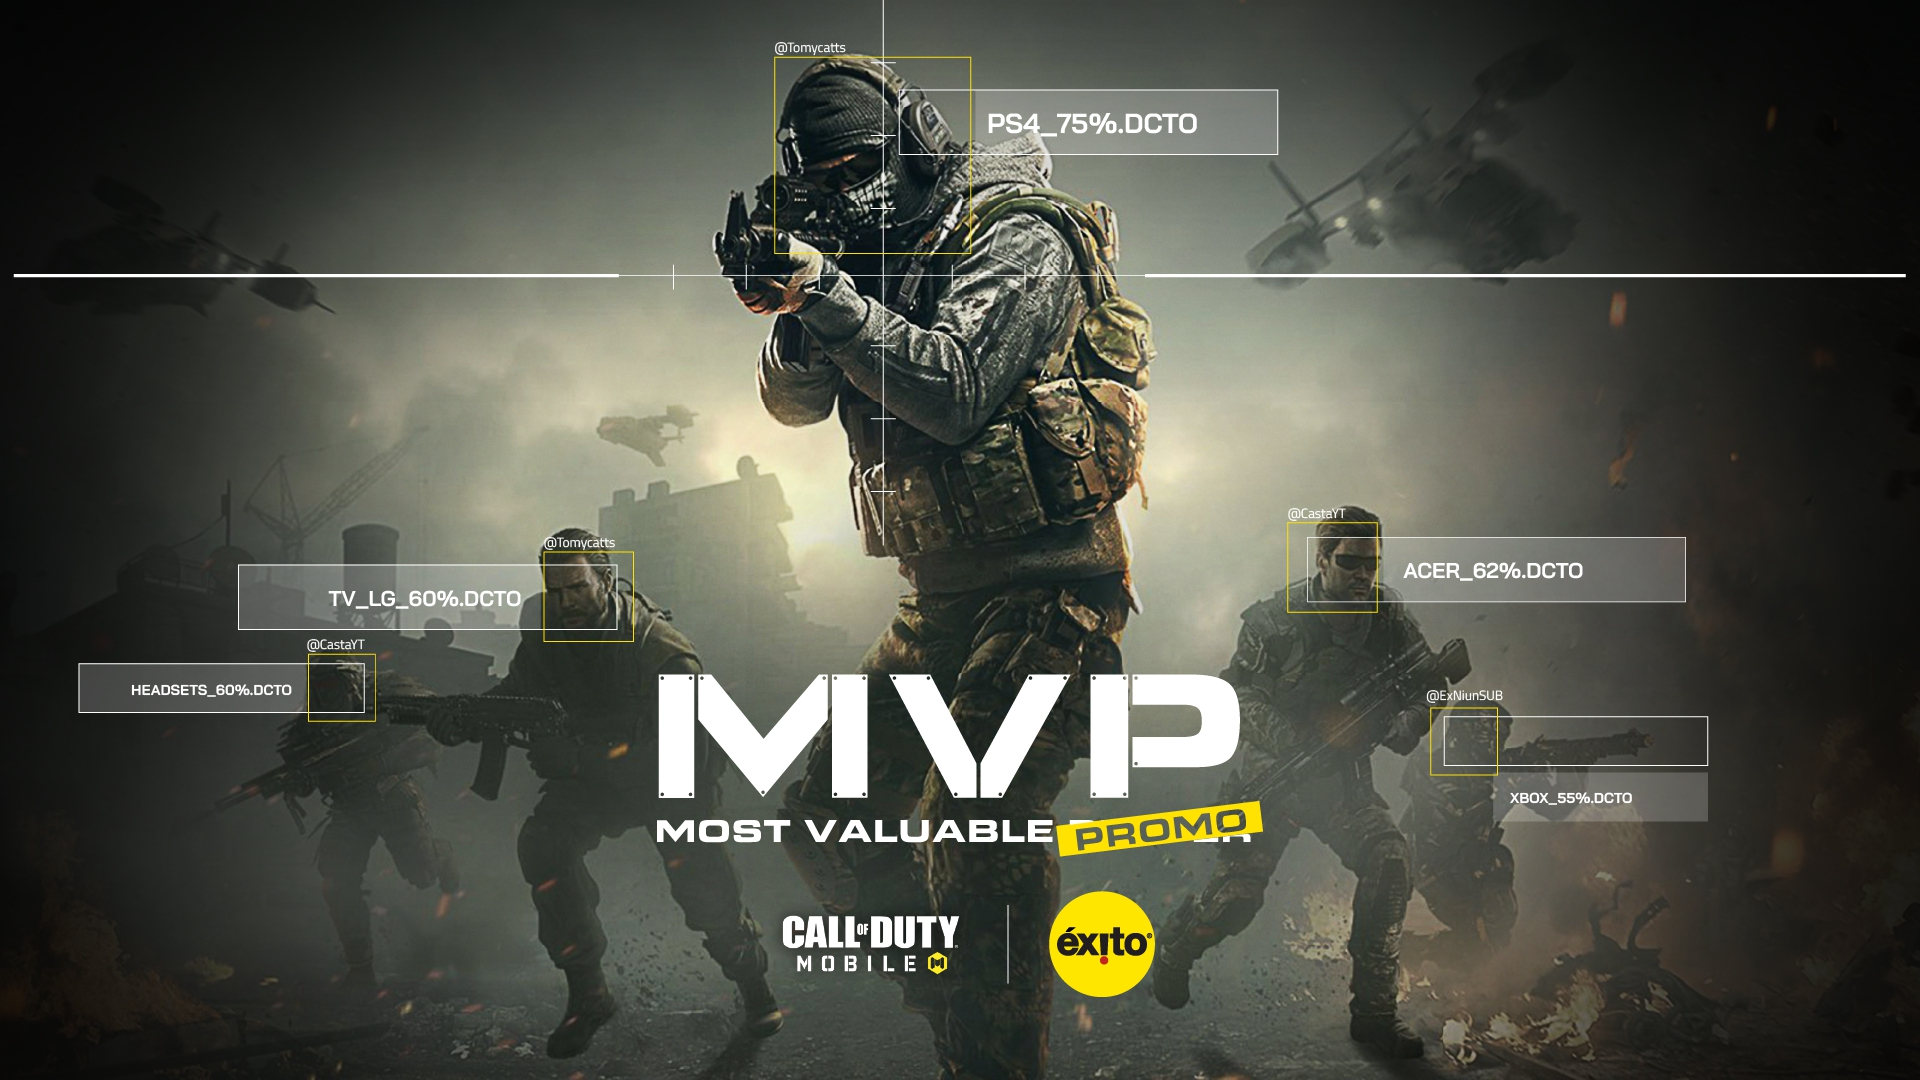 MVP: Most Valuable Promo